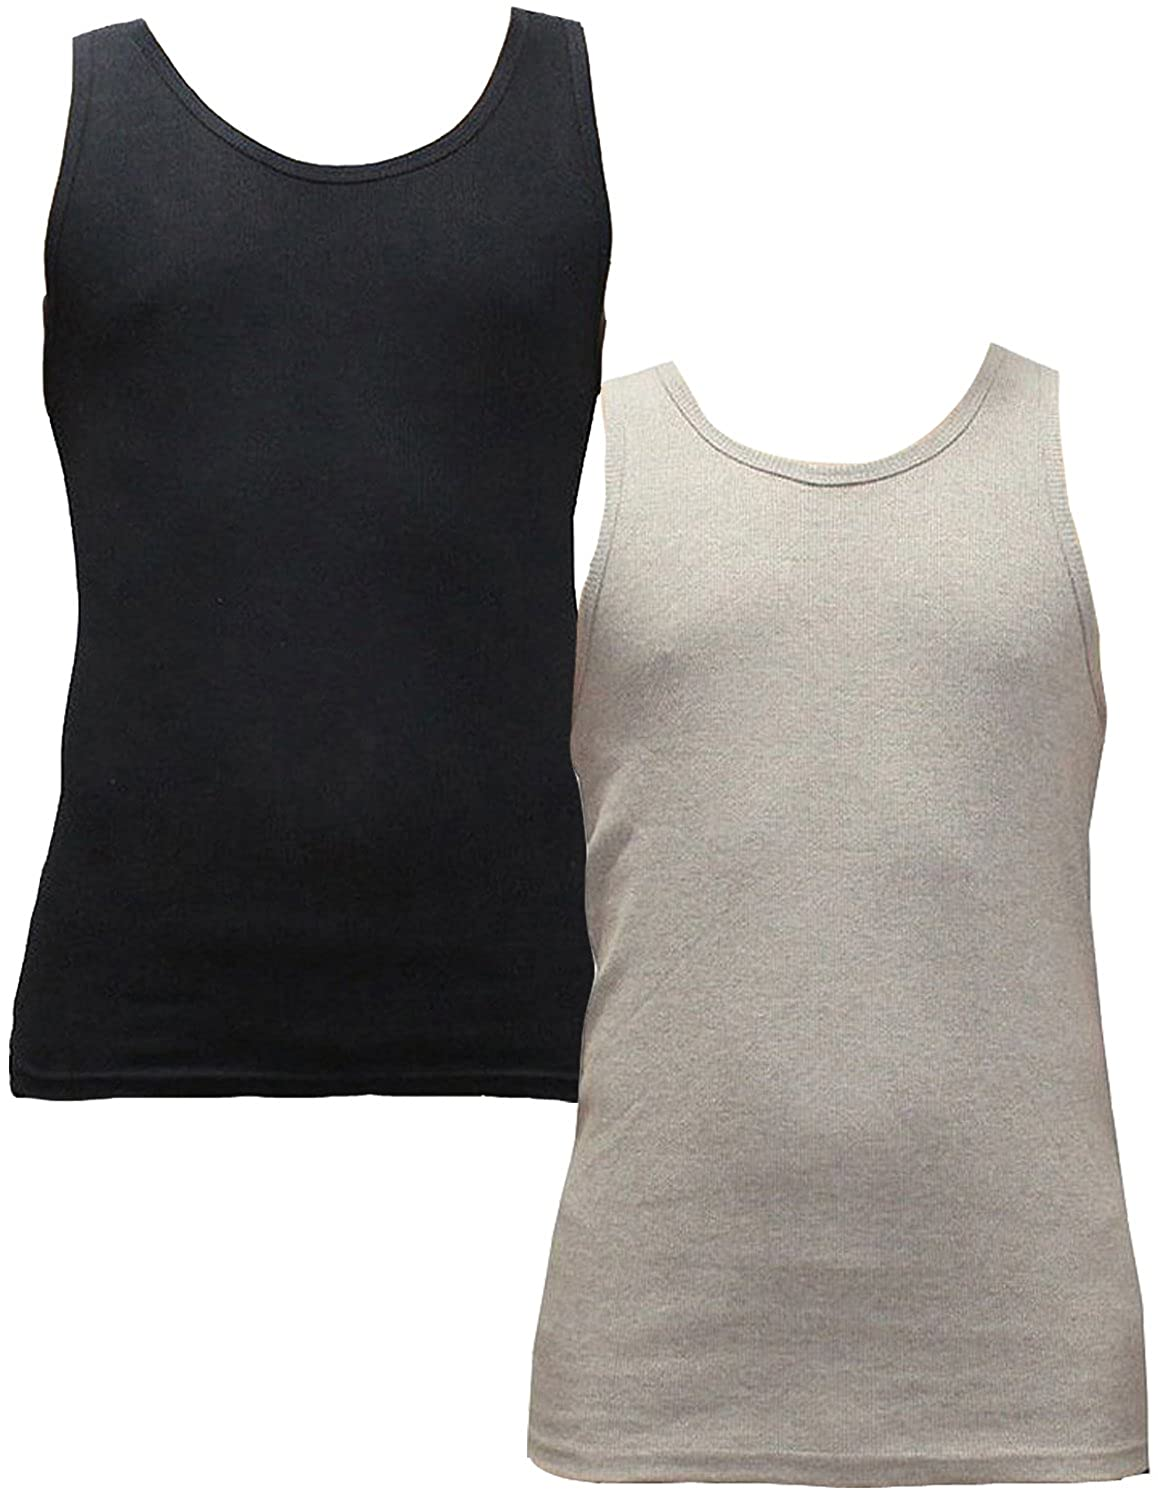 -Pack of 2- Men's Athletic Summer Muscle Tank Tops